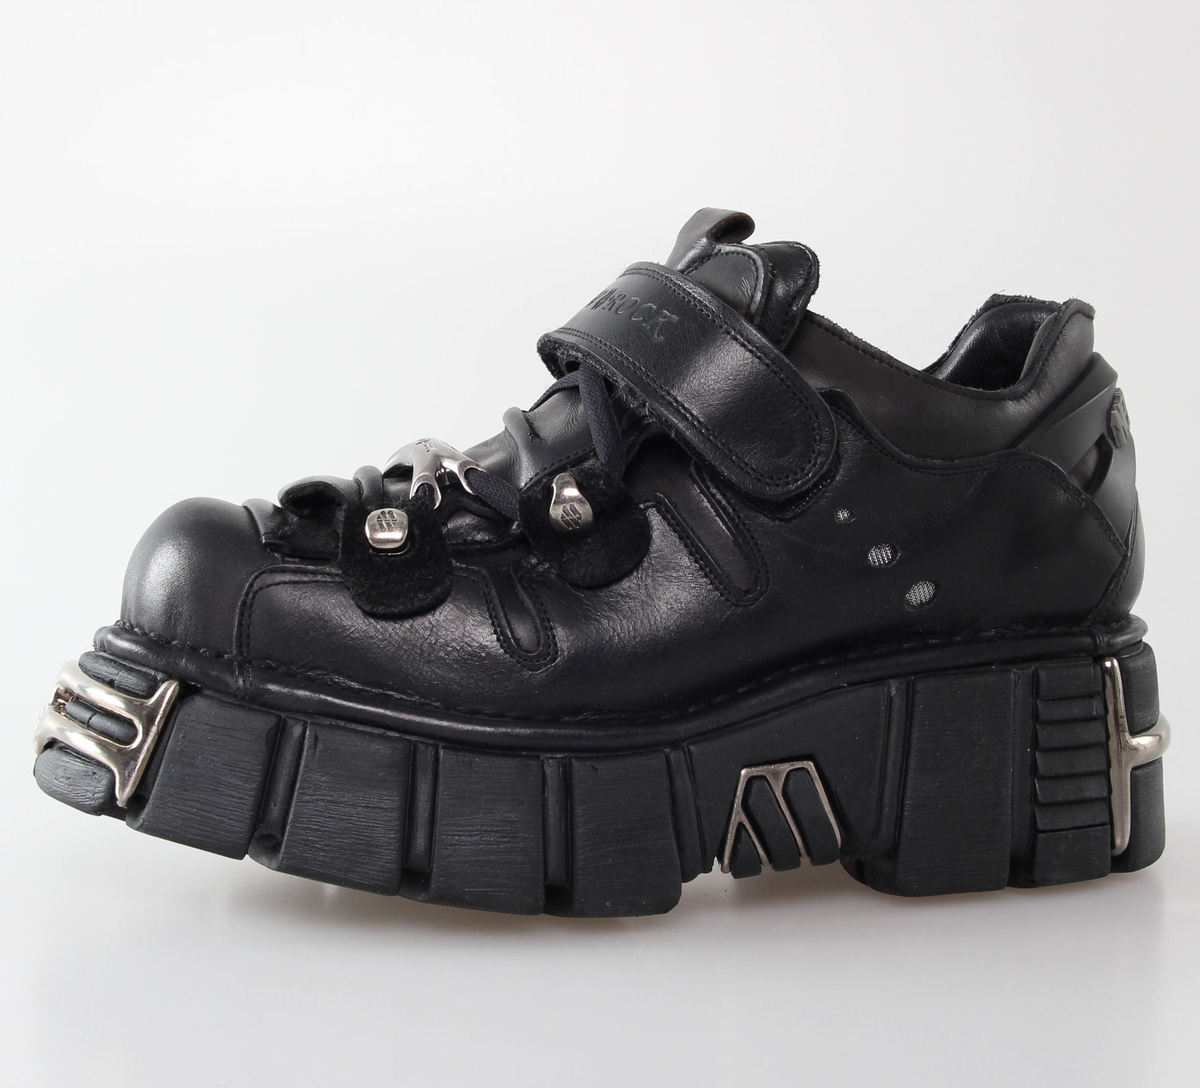 boty NEW ROCK - Bolt Shoes (131-S1) Black